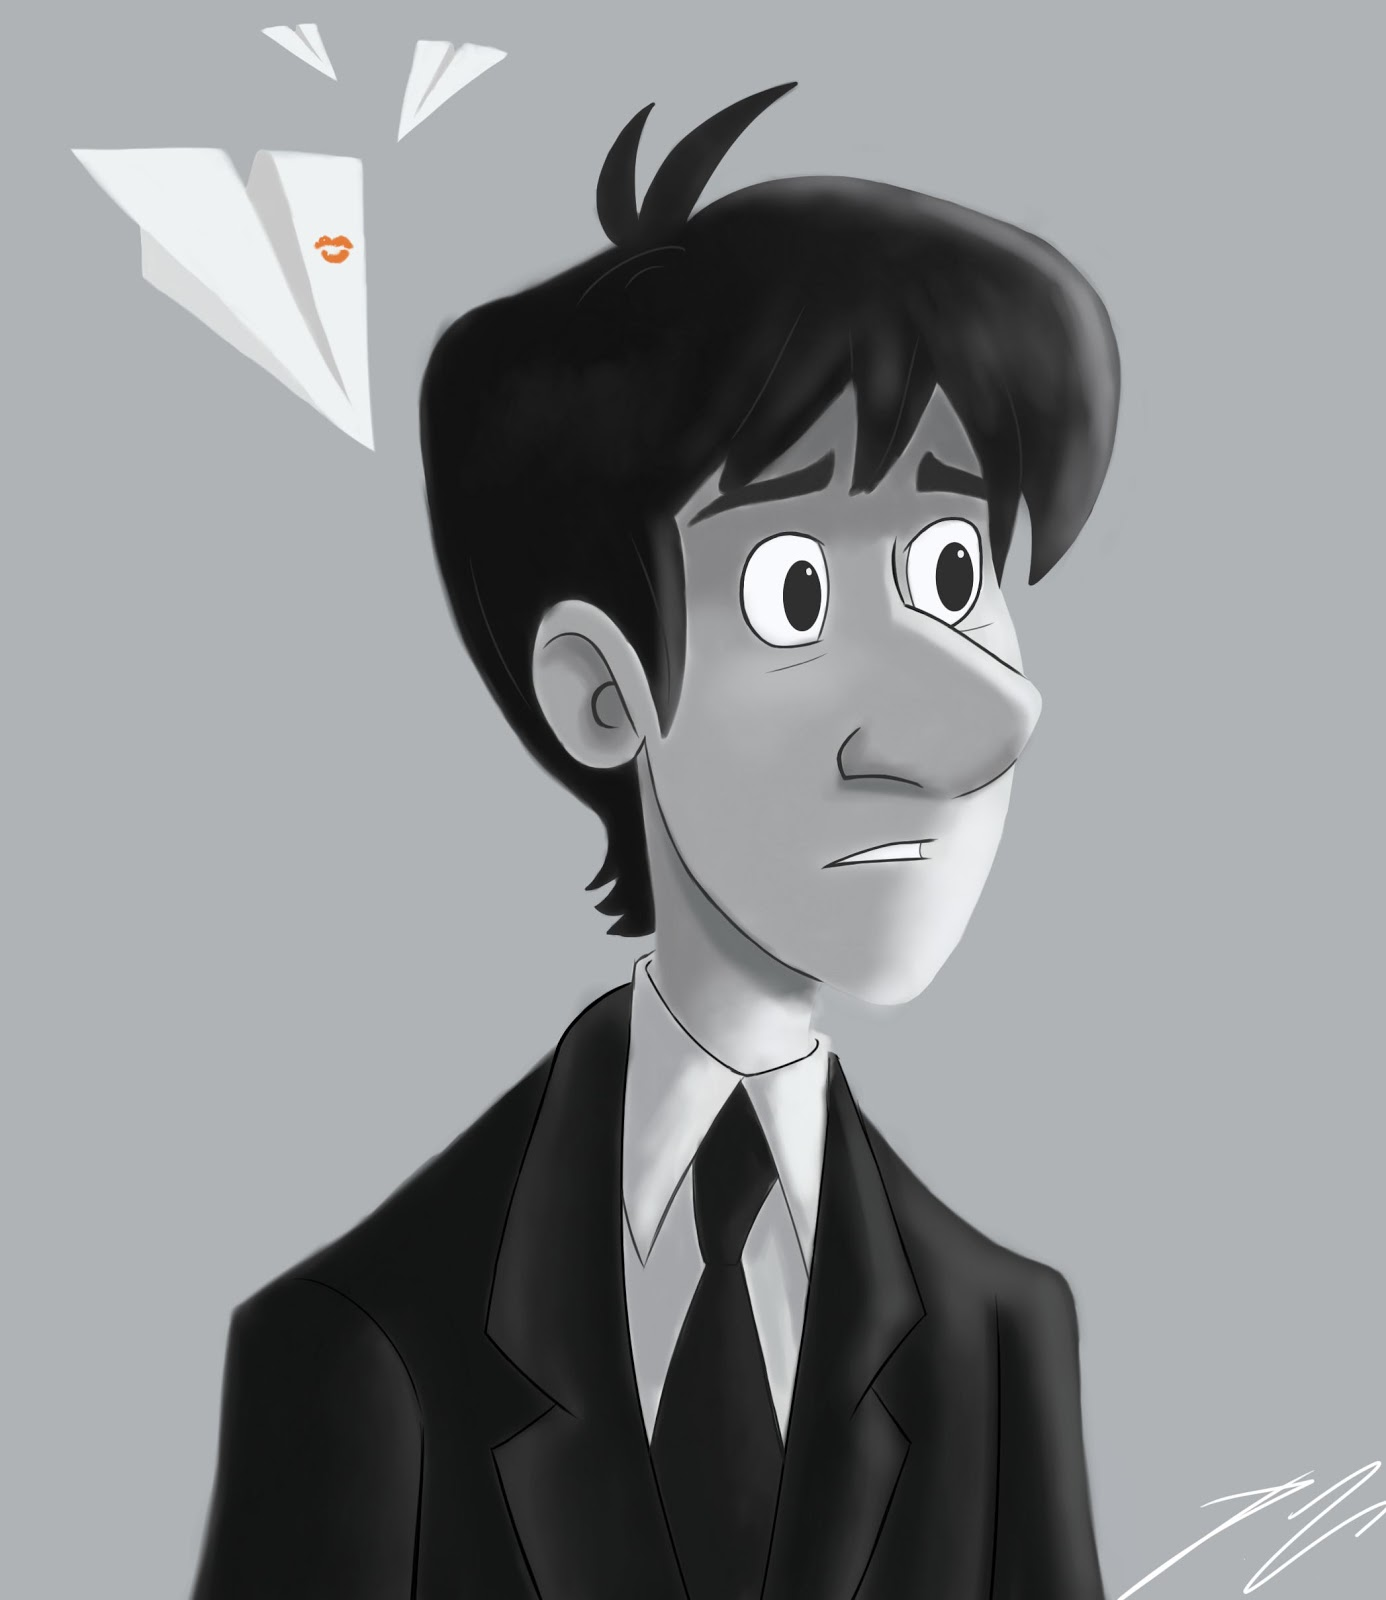 A Kiss On Paper Plane, cartoon, destiny, disney, Disney Short Film, Disney – Paperman Short Film, DisneyPaperman, flim, hope, love, lv, man, men, Paperman, paperman girl drawing, Paperman Short Film, Short Film, woman, women